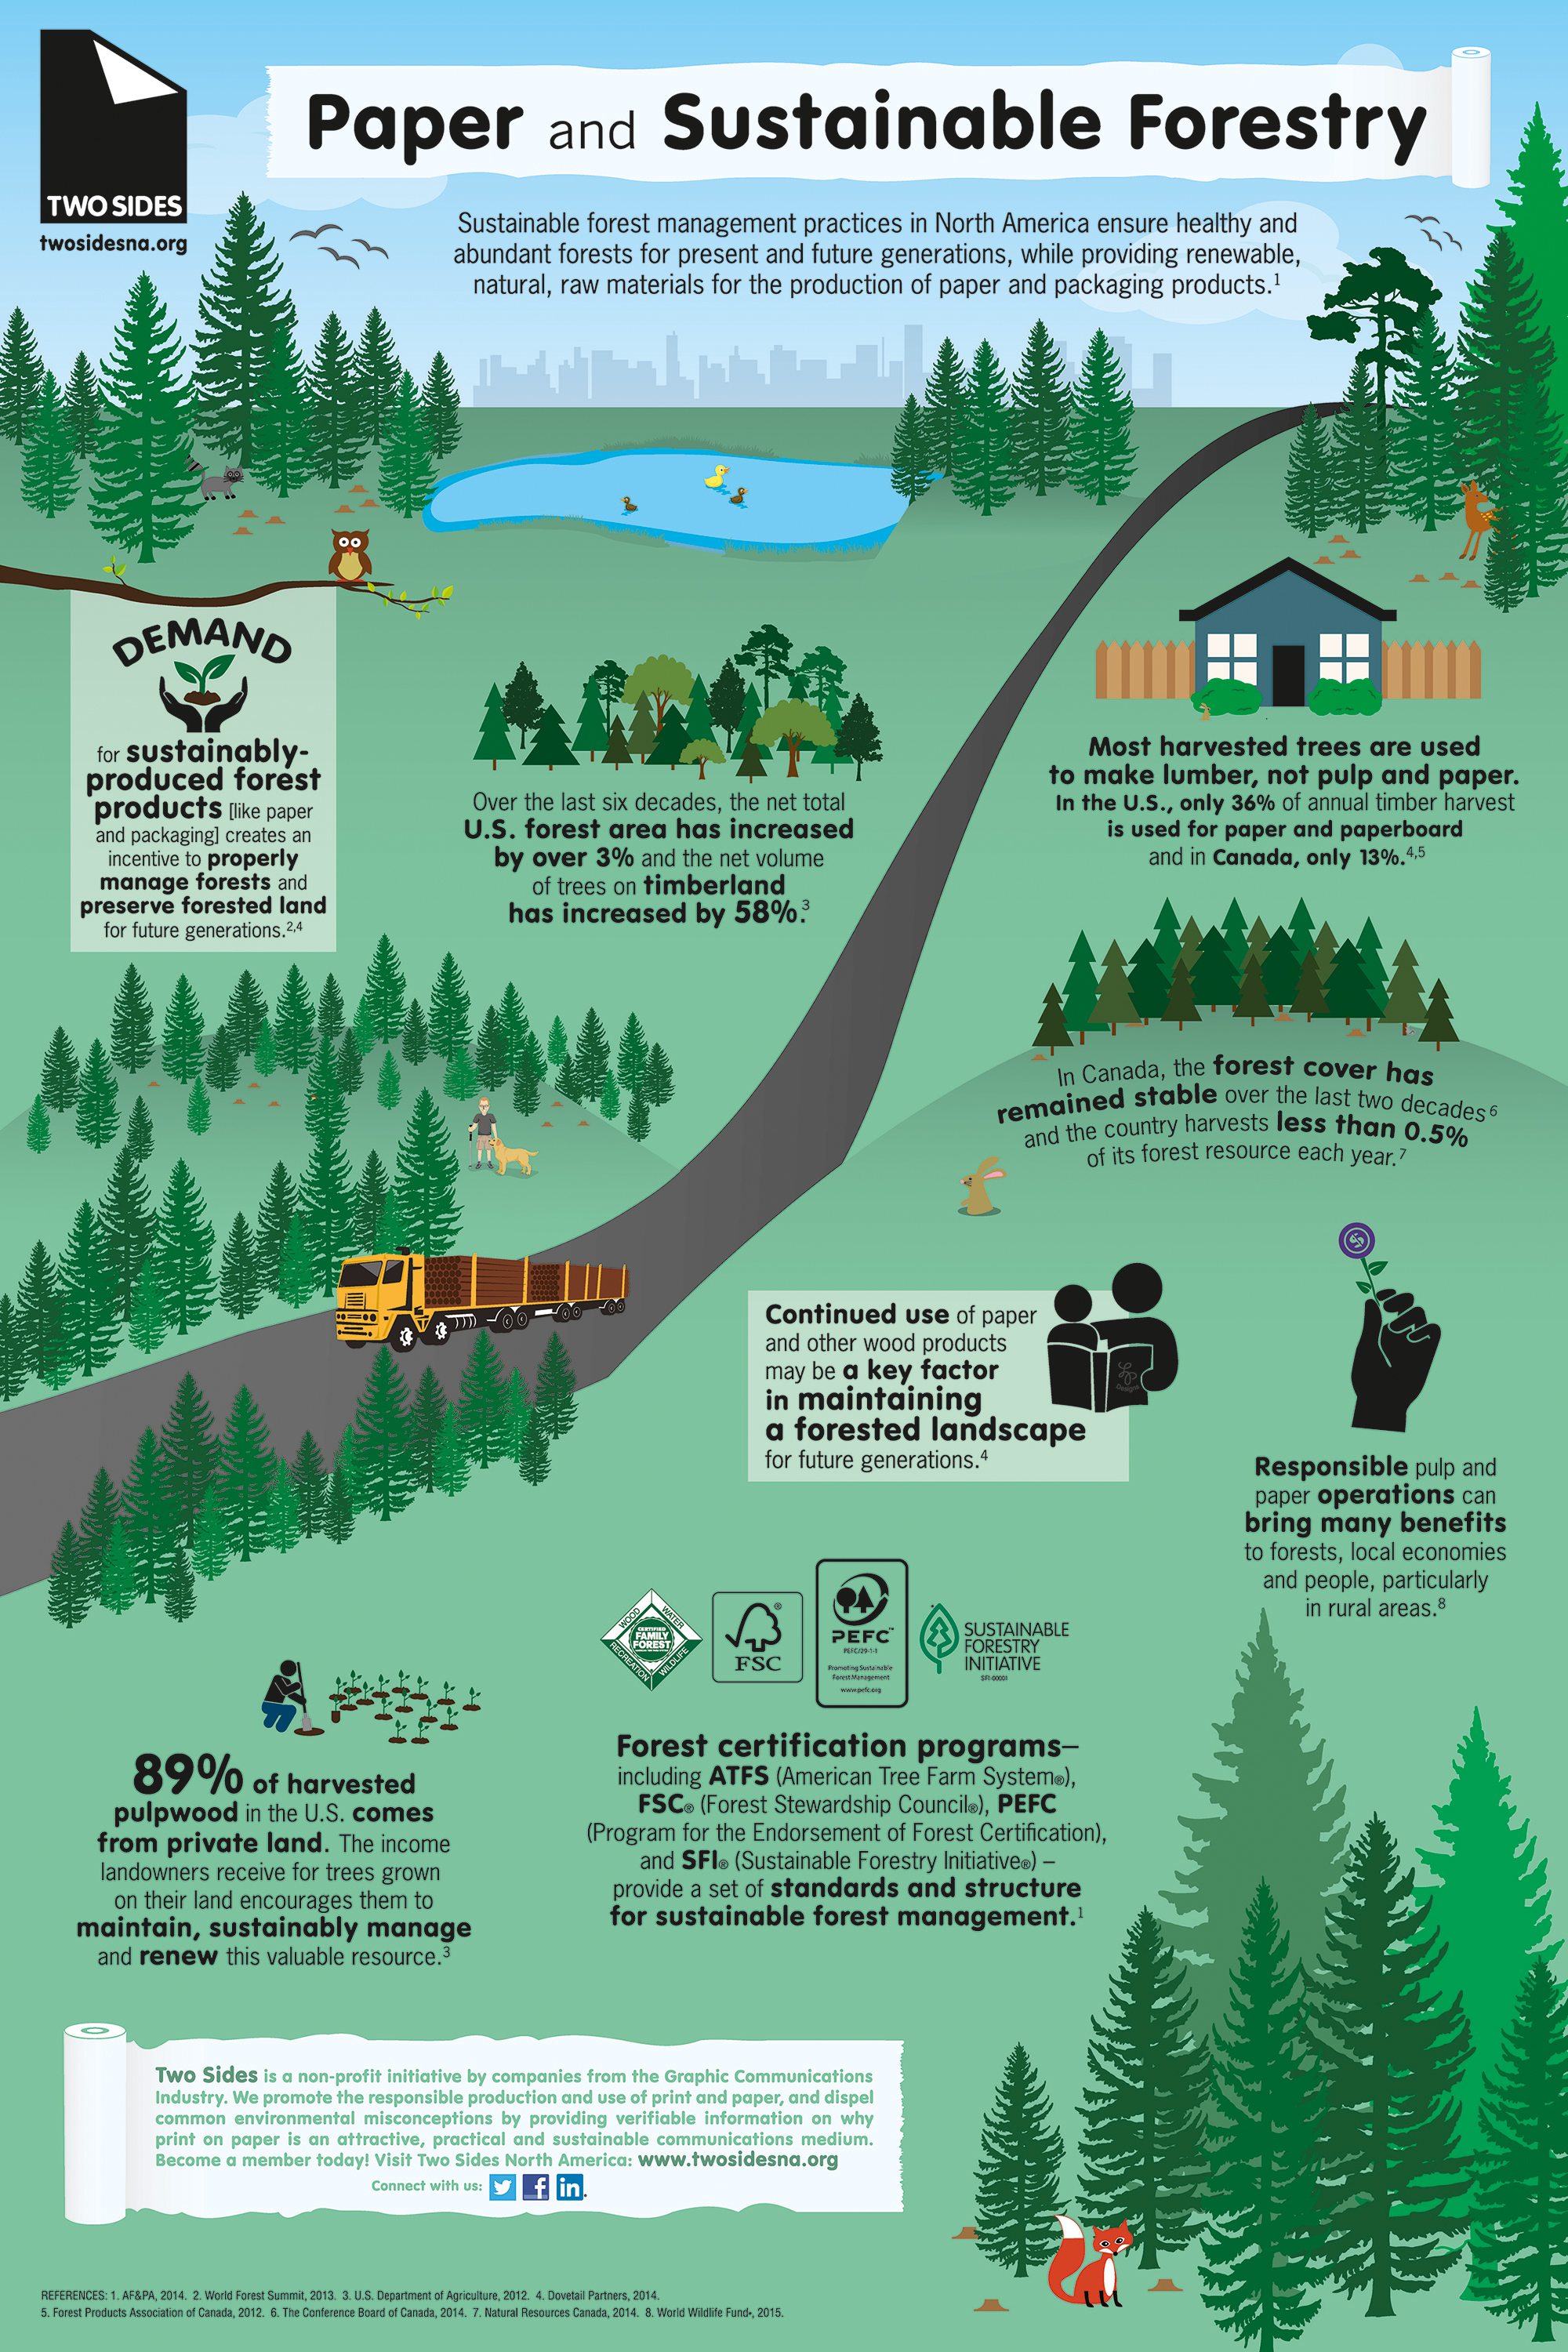 Paper Production Supports Sustainable Forest Management